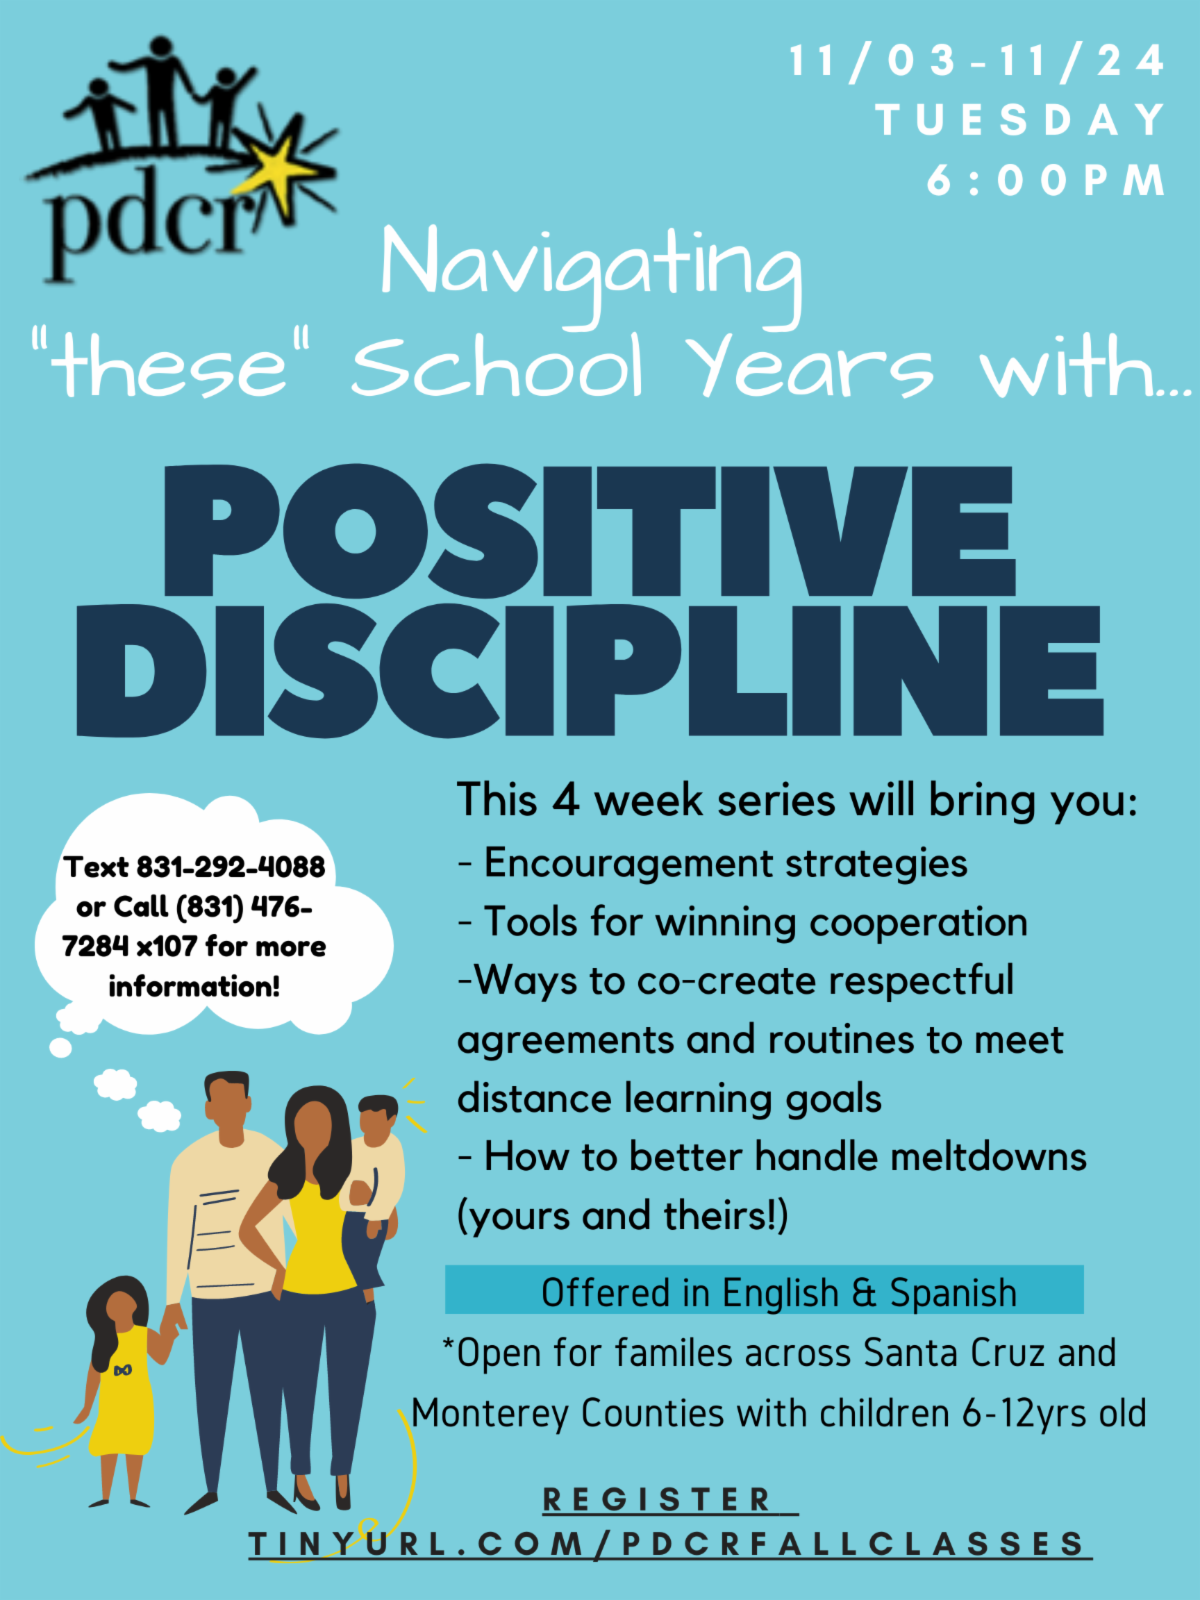 Positive Discipline support for families